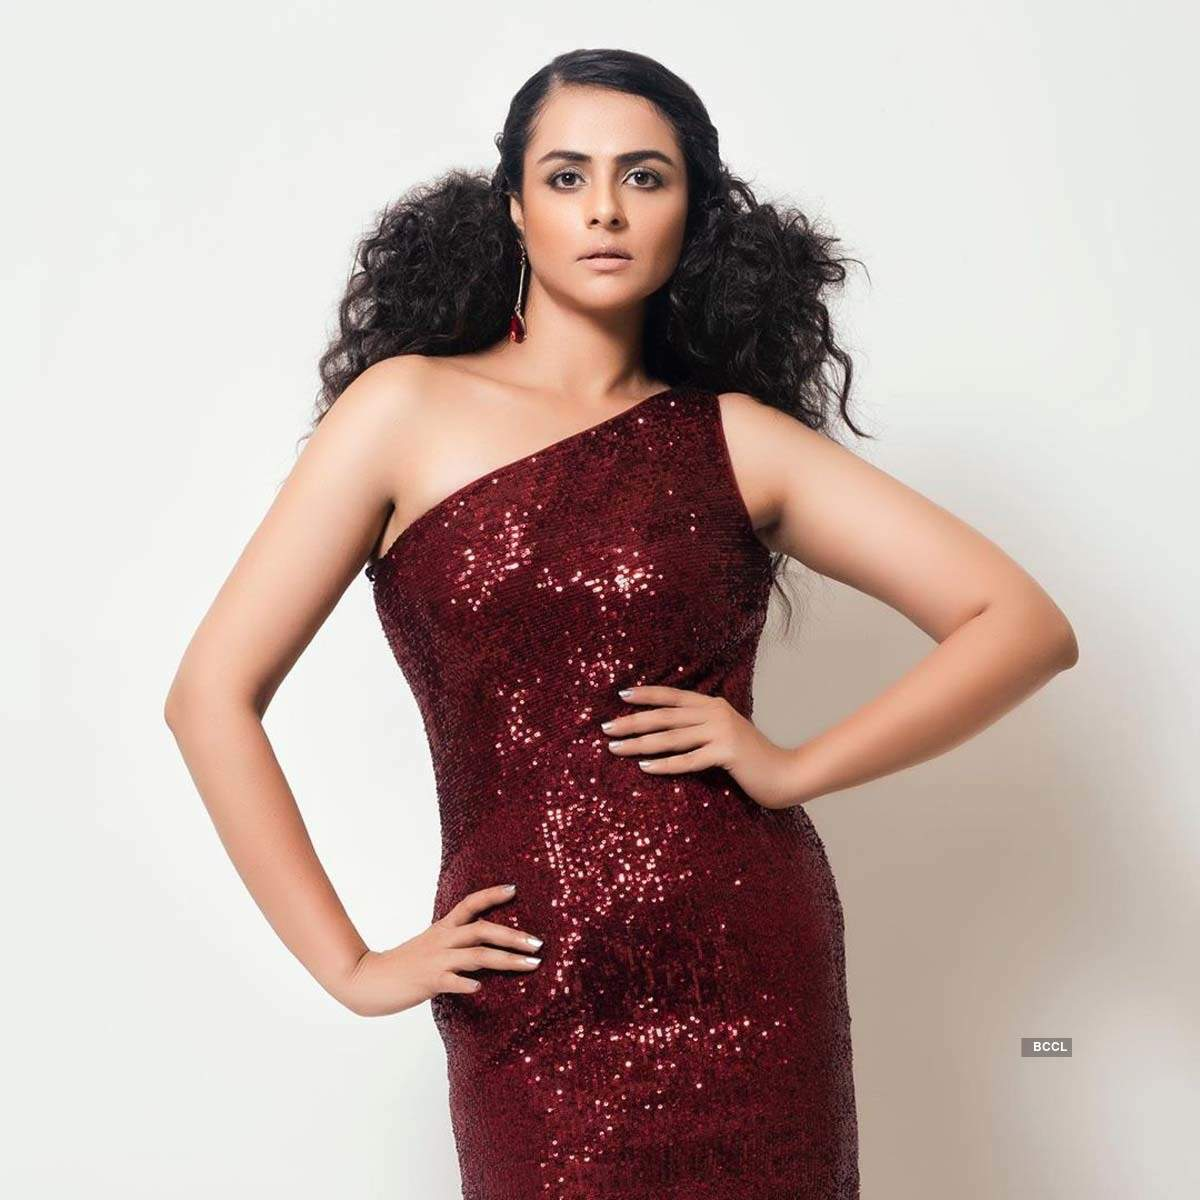 Indian basketball star Prachi Tehlan shows off her sultry side in these stunning pictures